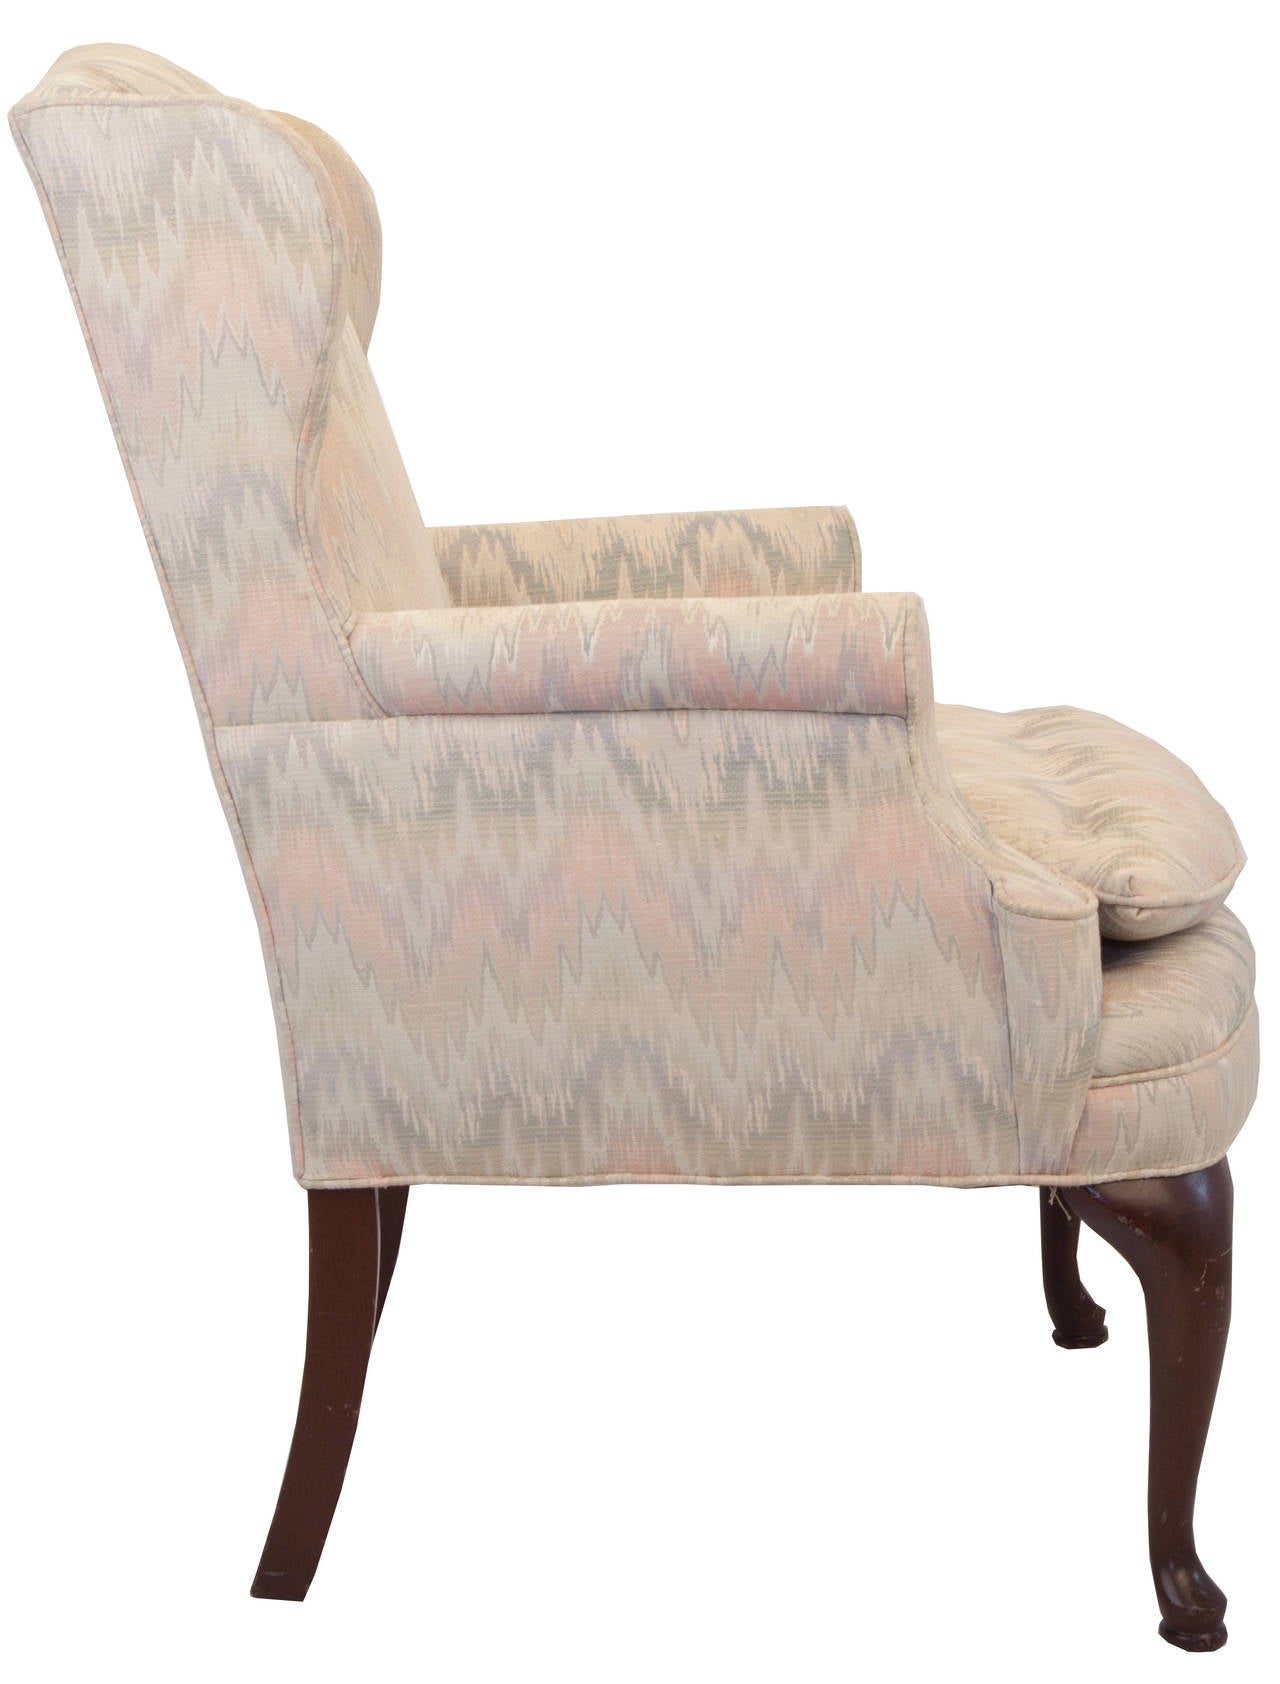 queen anne style chair steel bd upholstered wing at 1stdibs